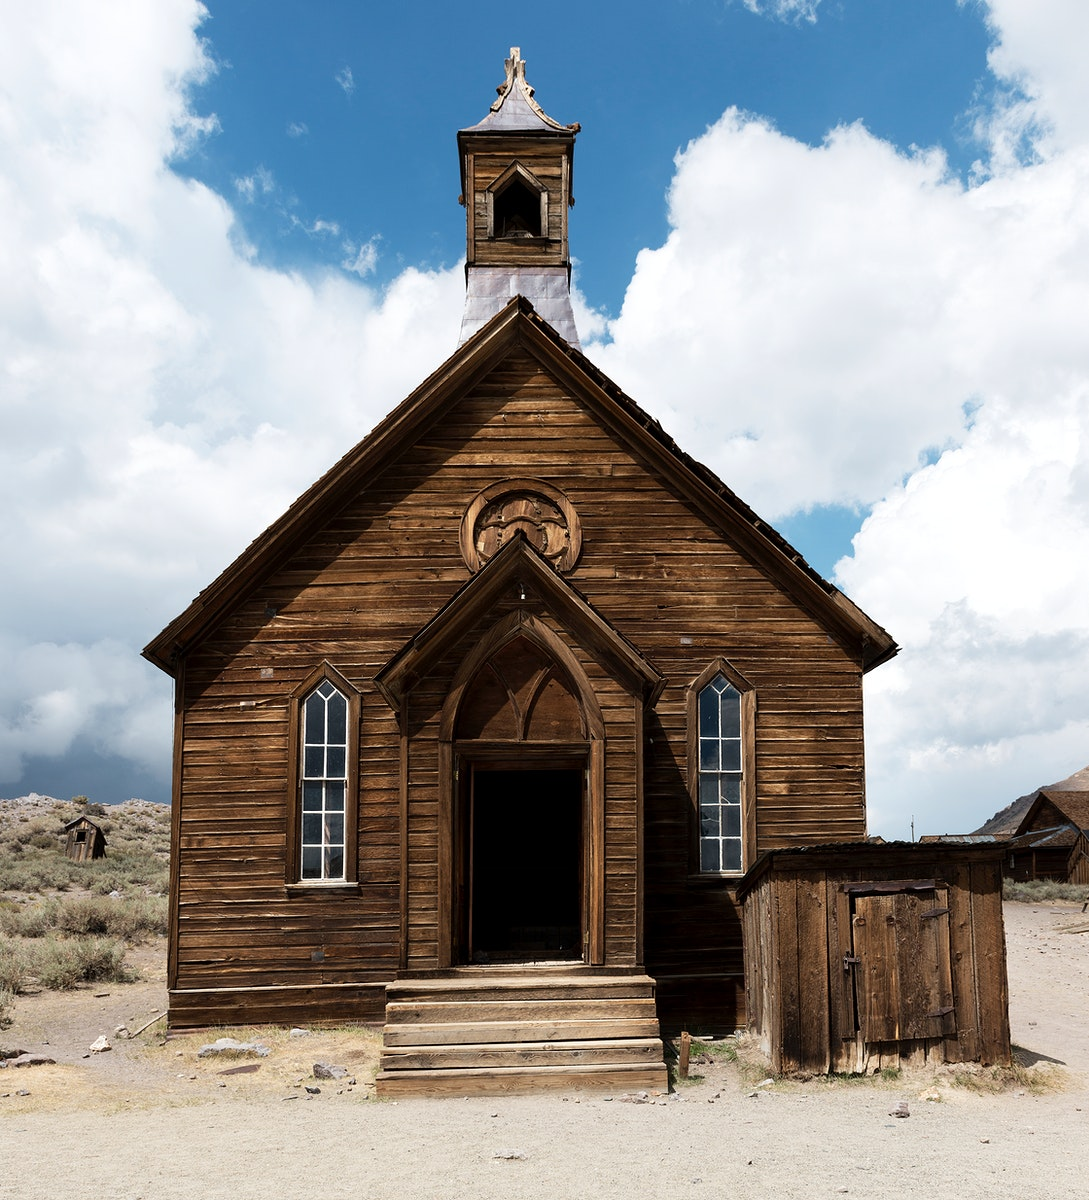 Bodie, a ghost town in the Bodie Hills, east of the Sierra Nevada mountain range in Mono County, California. Original image…